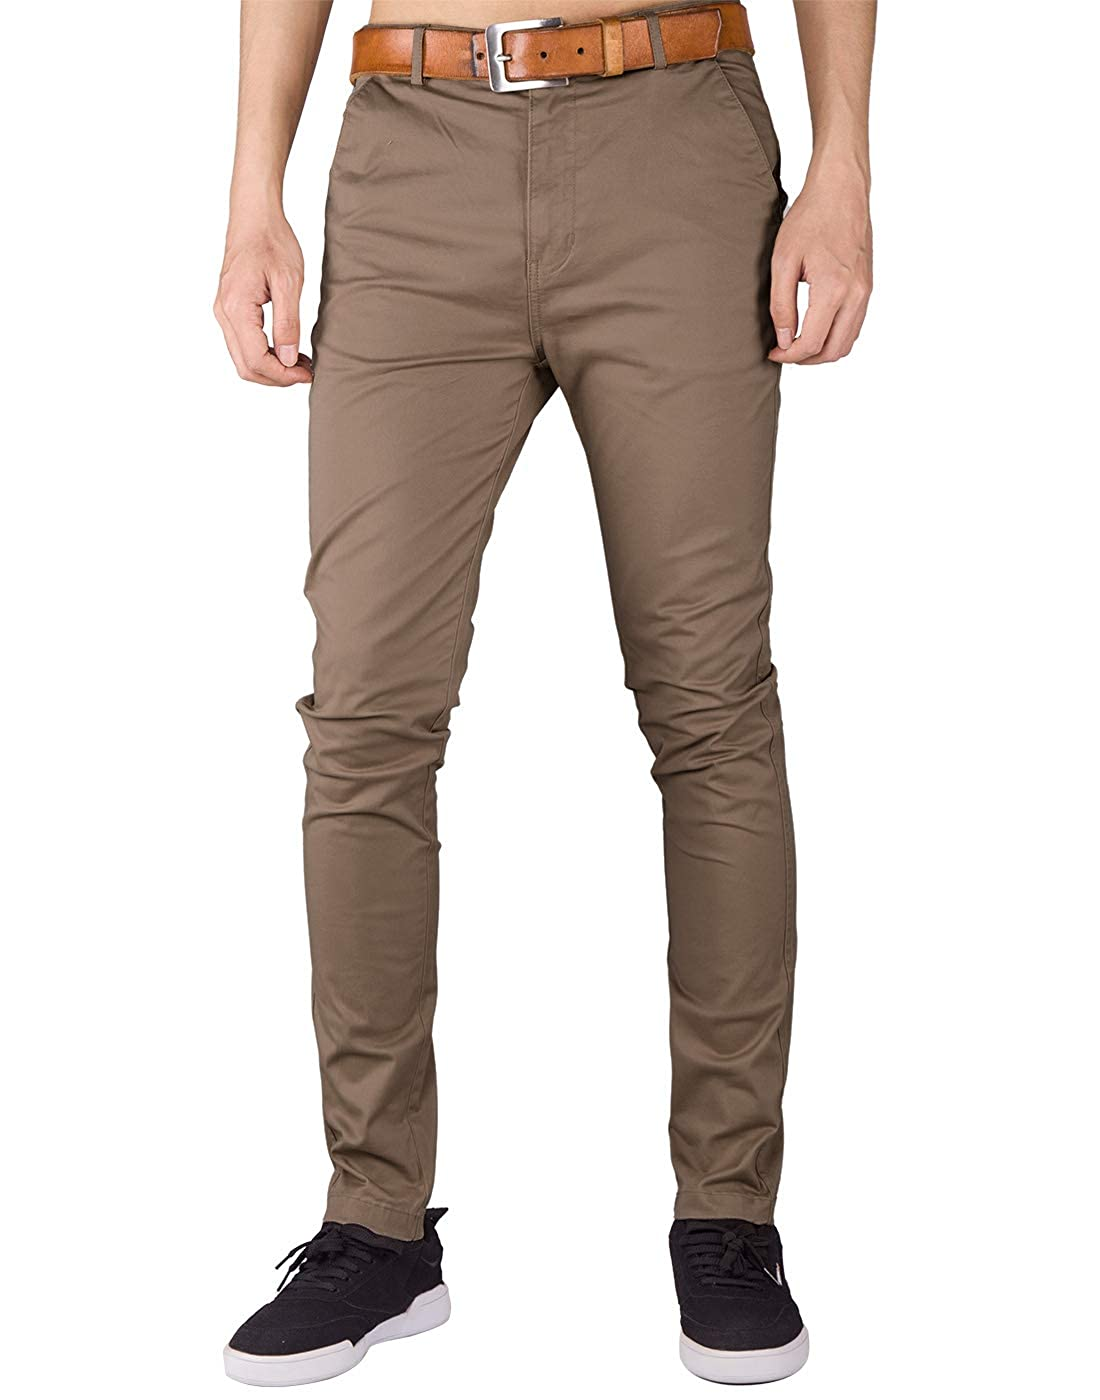 ITALY MORN Men's Chino Casual Pants Slim Fit